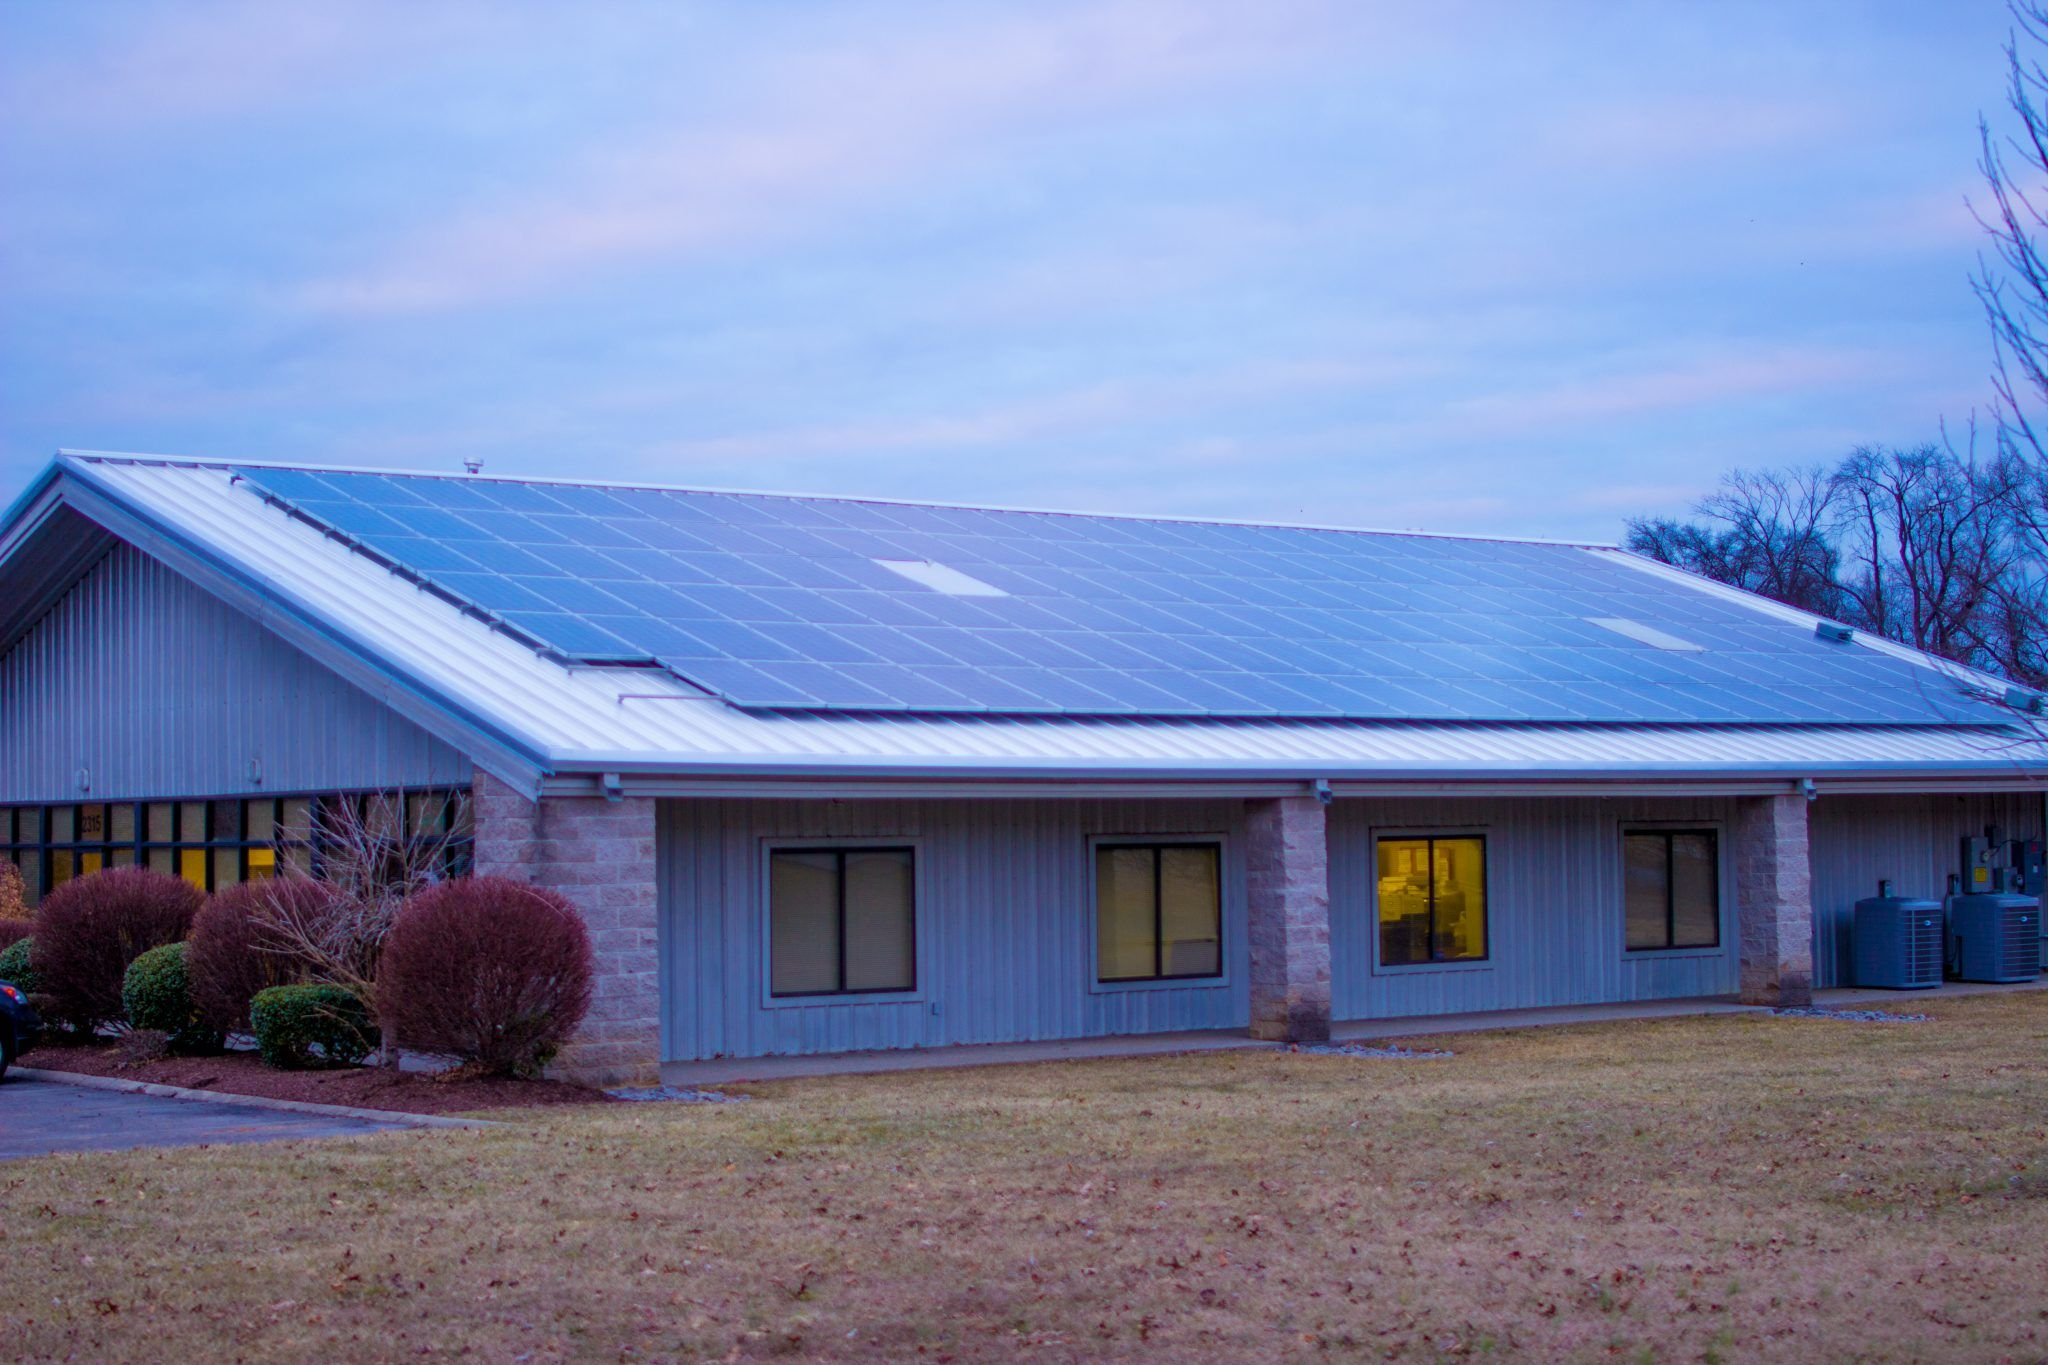 Standing Seam Metal Roof Solar Panels | Roofing ...